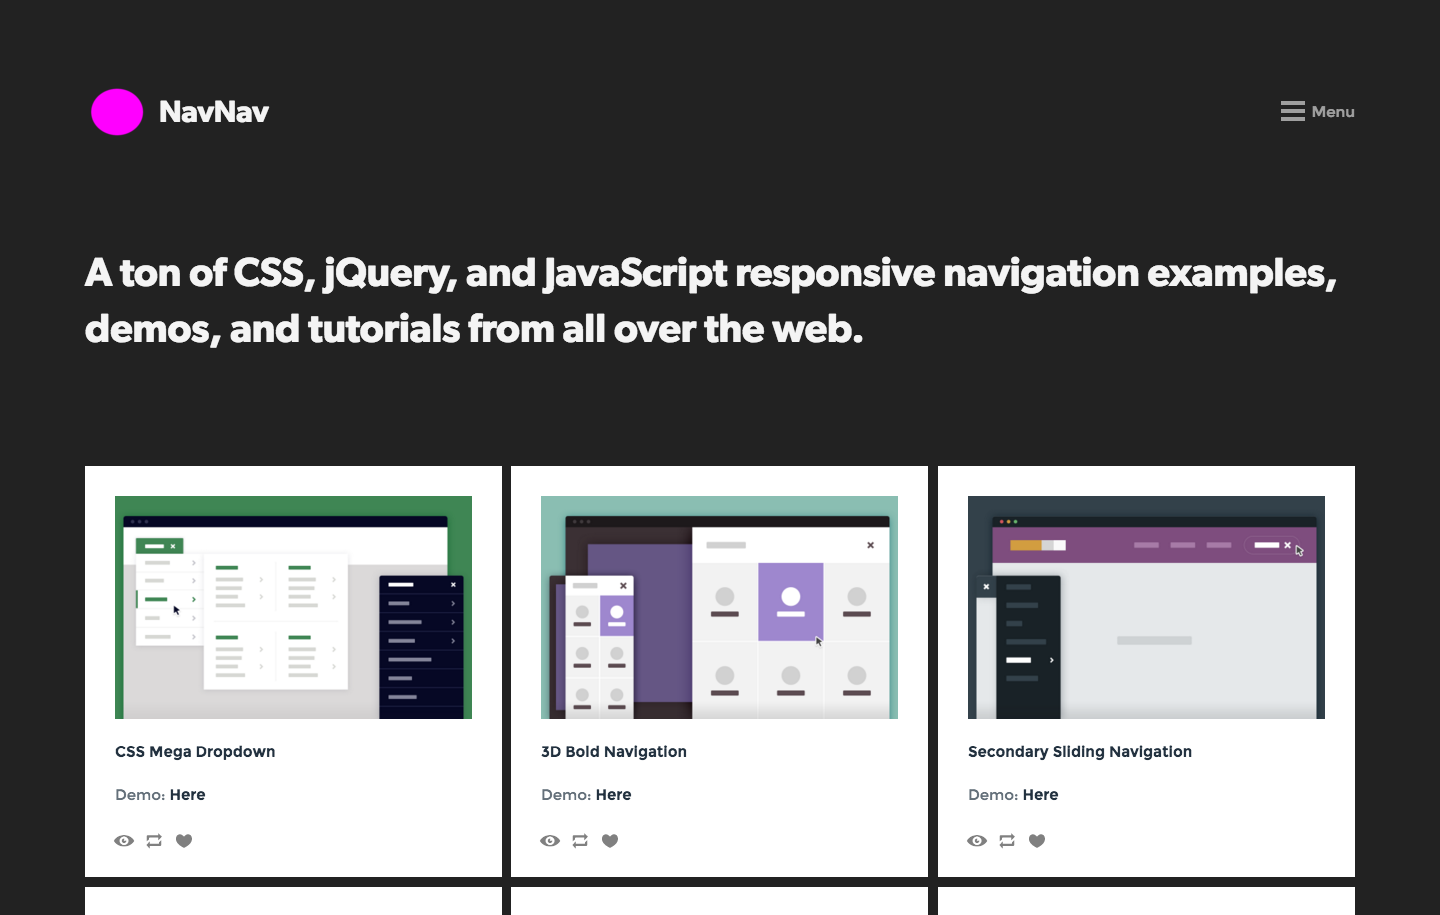 Navnav 90 responsive navigation bar menu tutorials examples and navnav 90 responsive navigation bar menu tutorials examples and demos css malvernweather